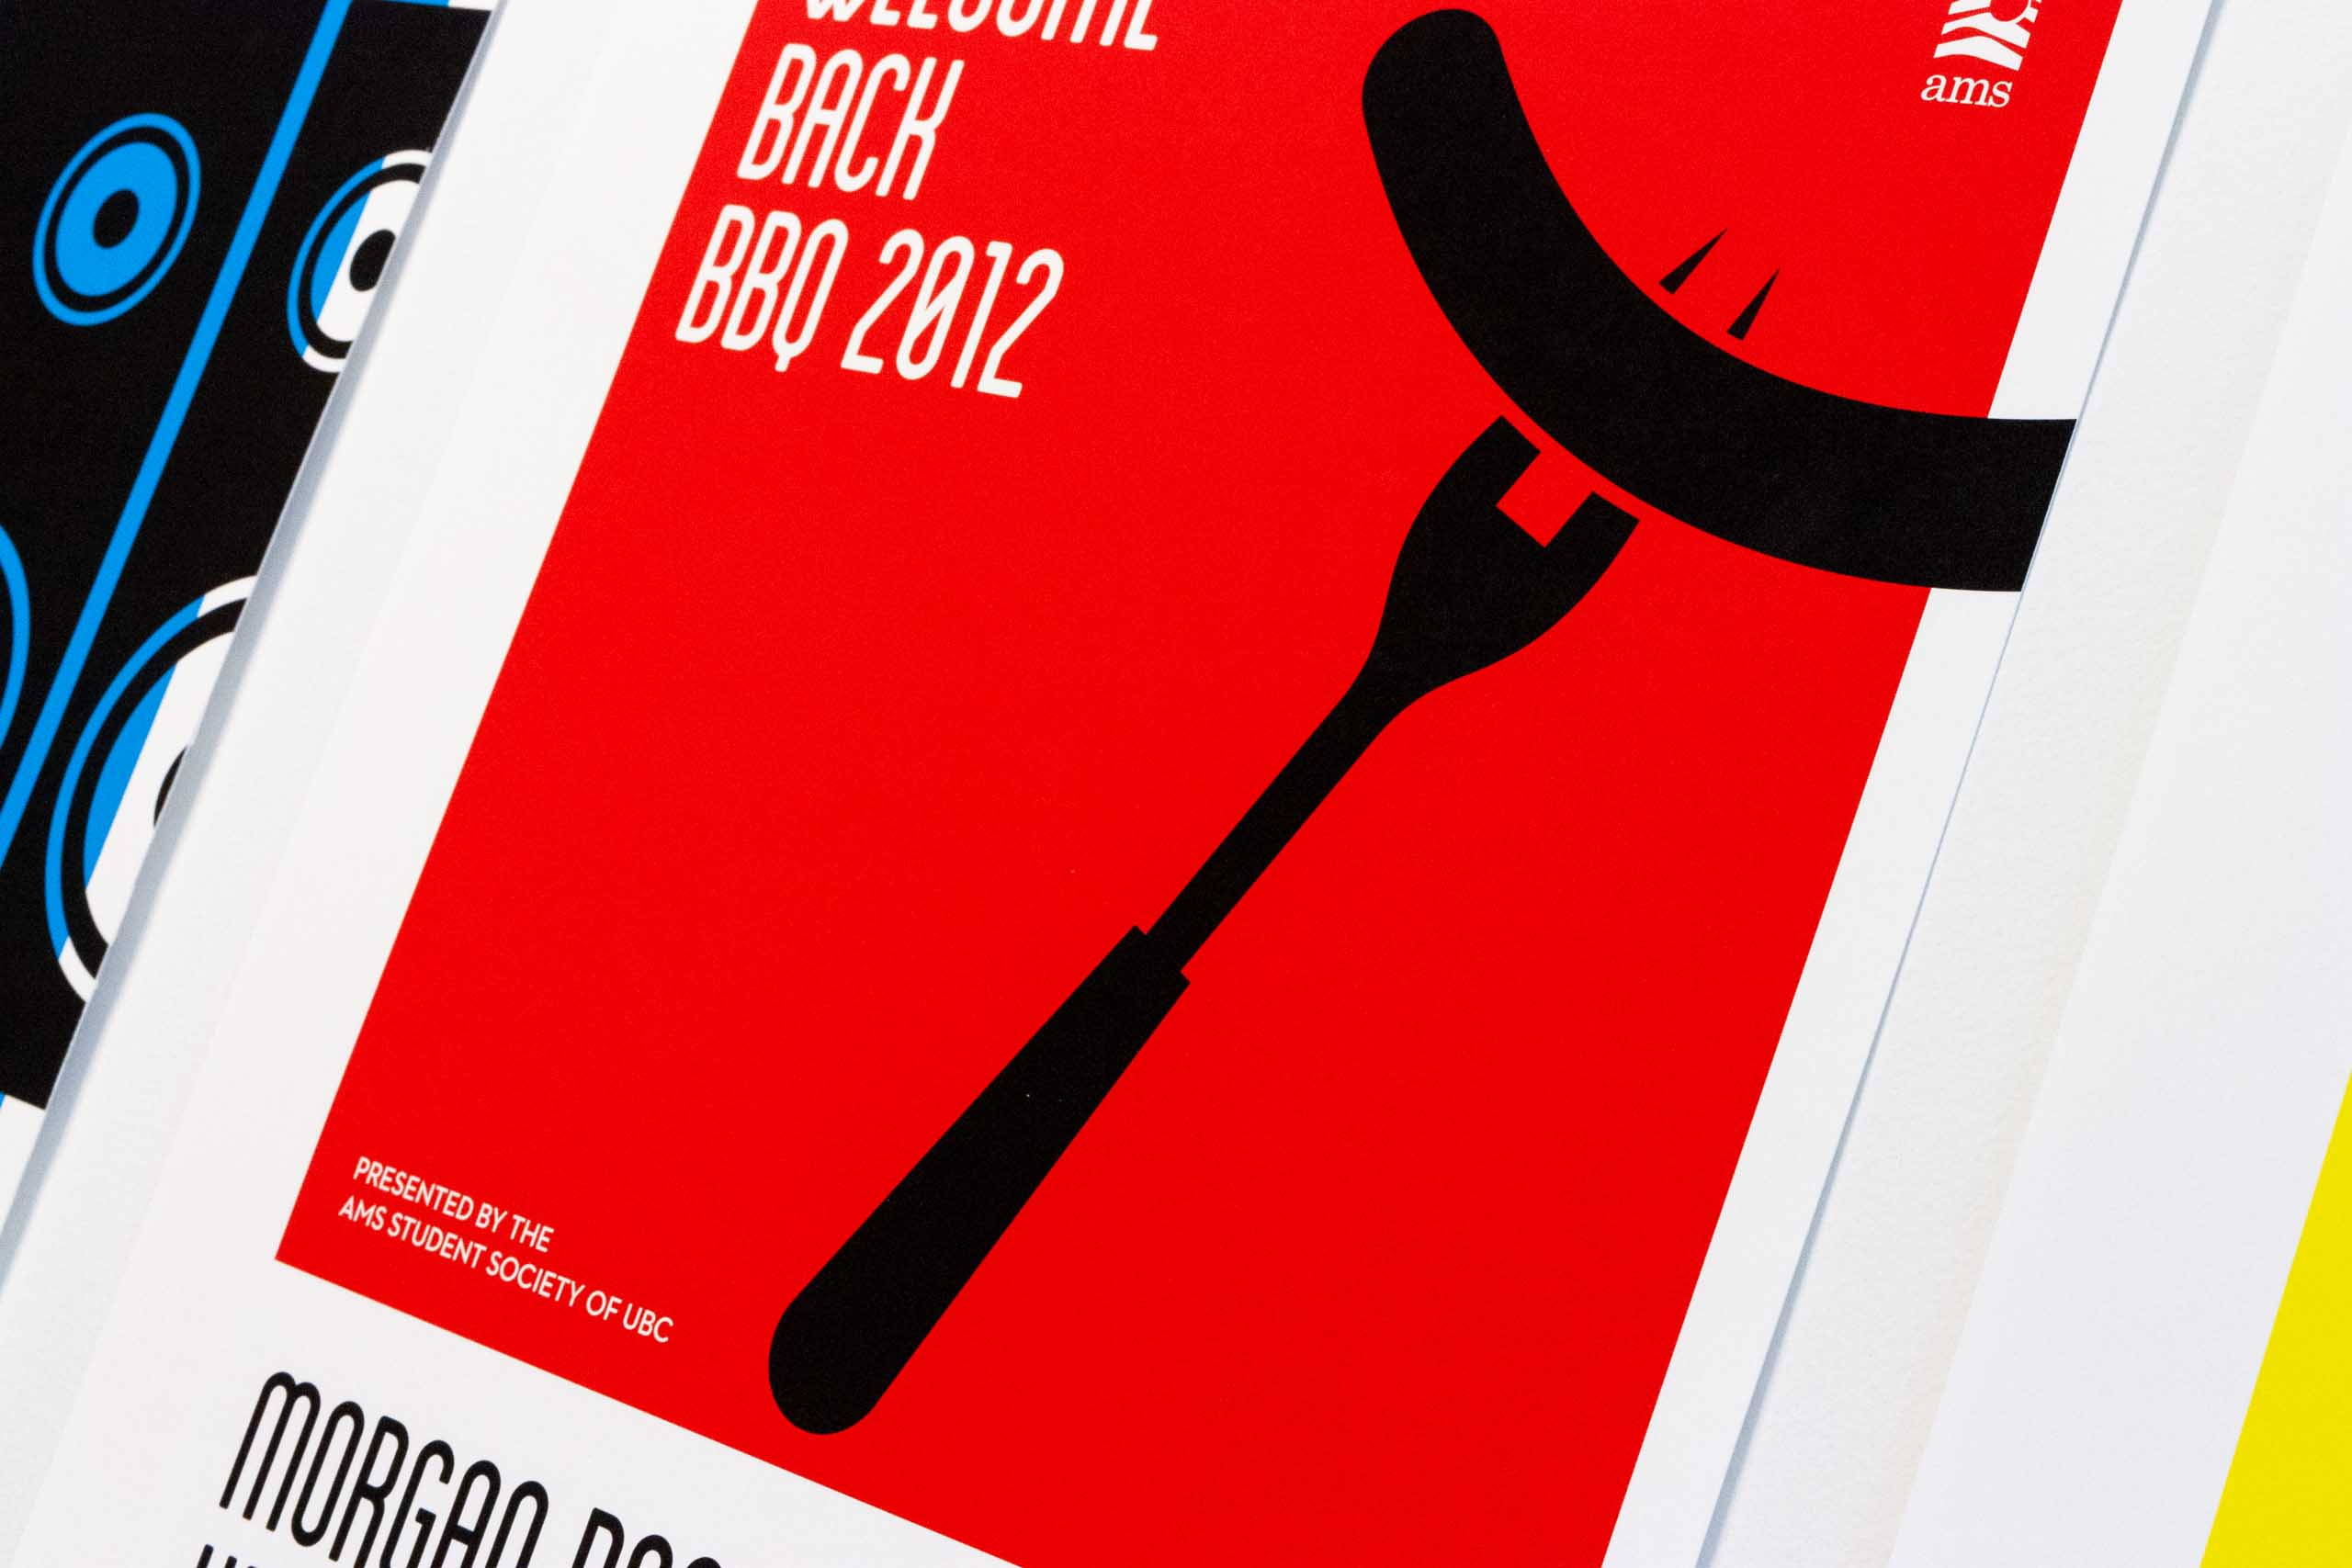 Close up of the fork and sausage illustration on the red poster for UBC Student Music Festival — by Yagnyuk.